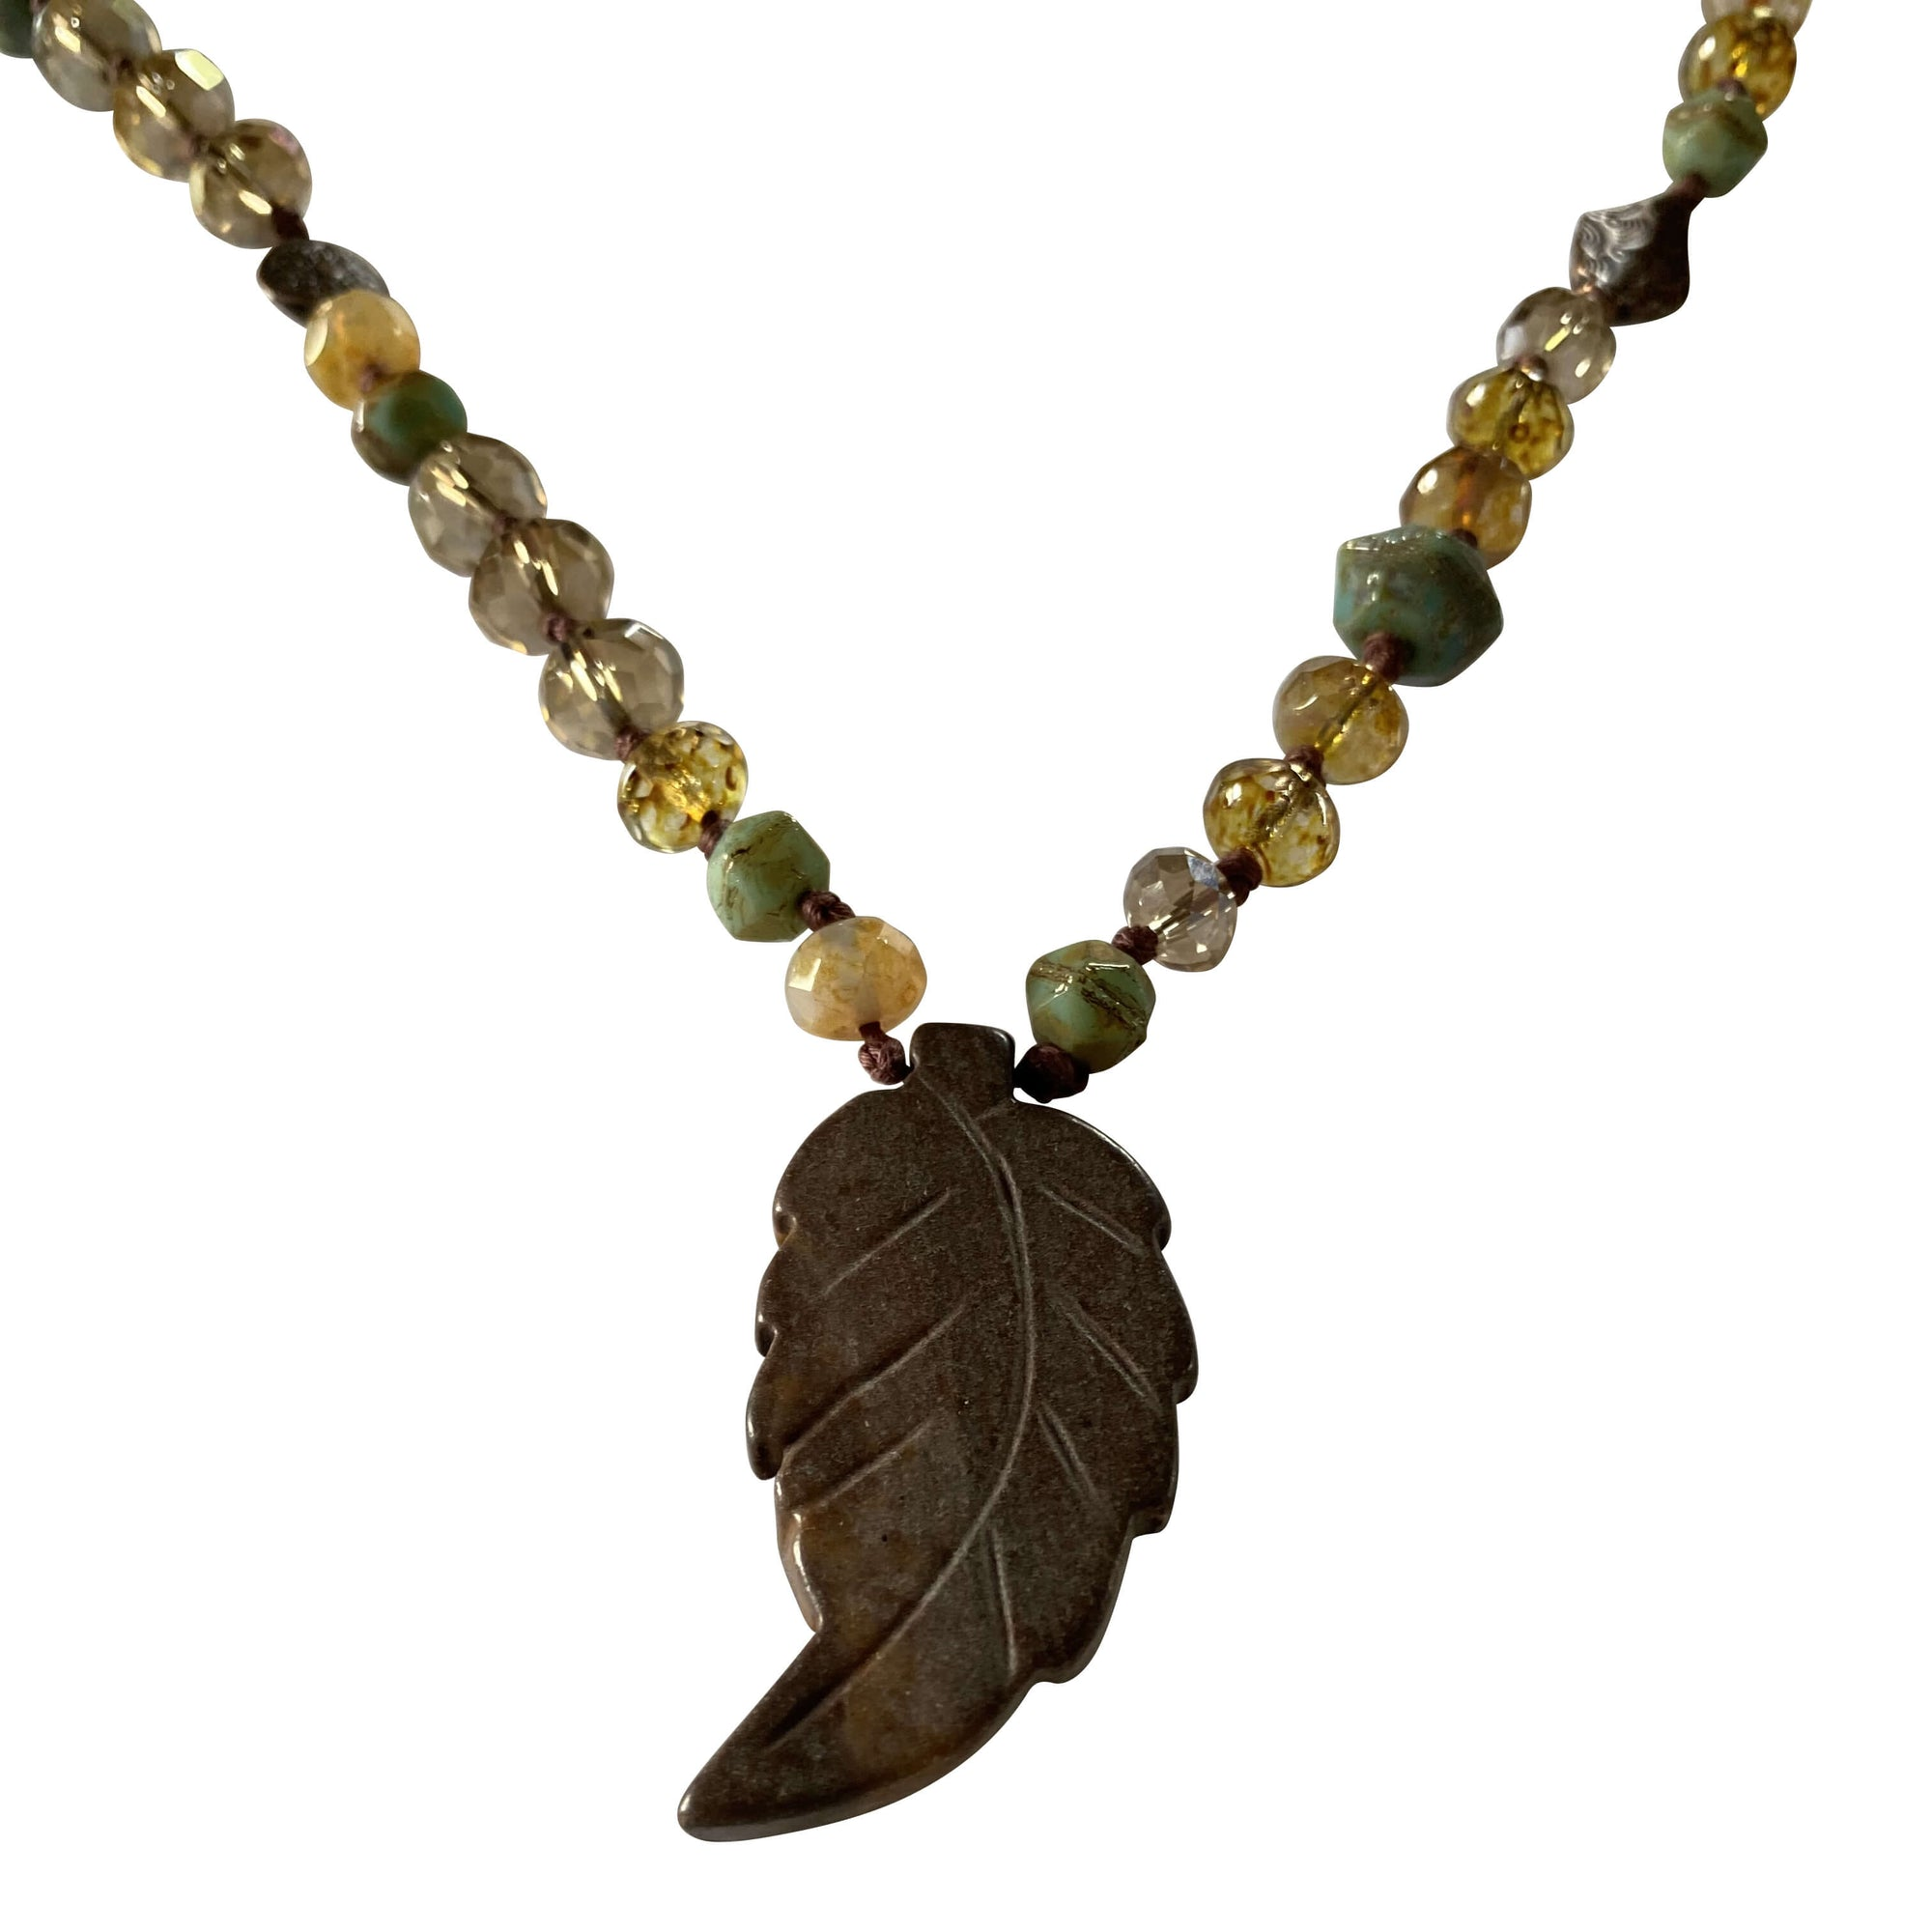 Hand Knotted Czech Table Cut Faceted Beaded Necklace with Leaf Pendant-Necklaces- Creative Jewelry by Marcia